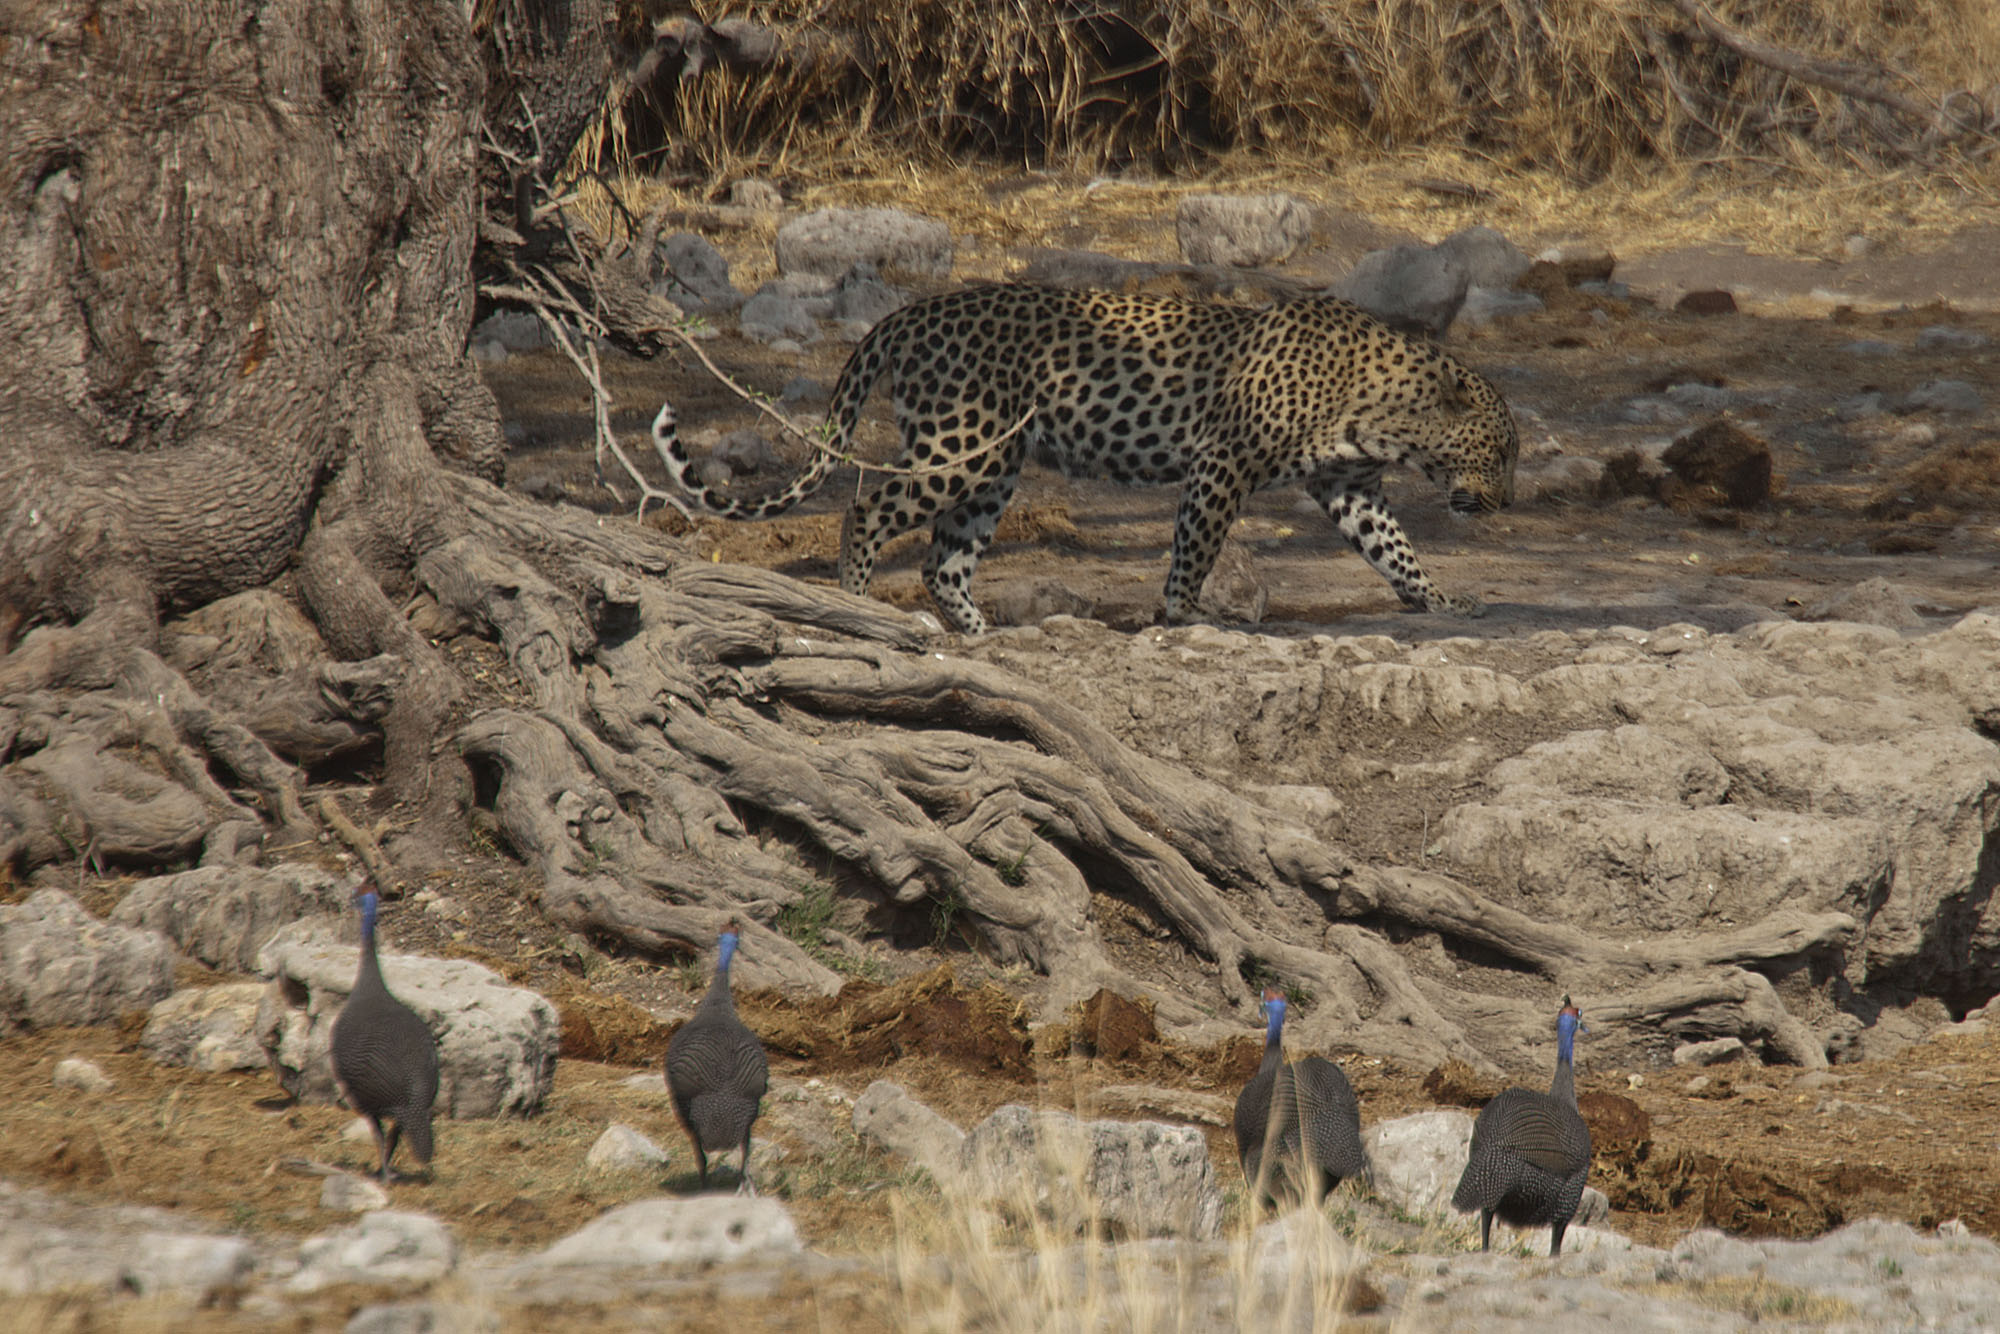 Leopard approaching the waterhole